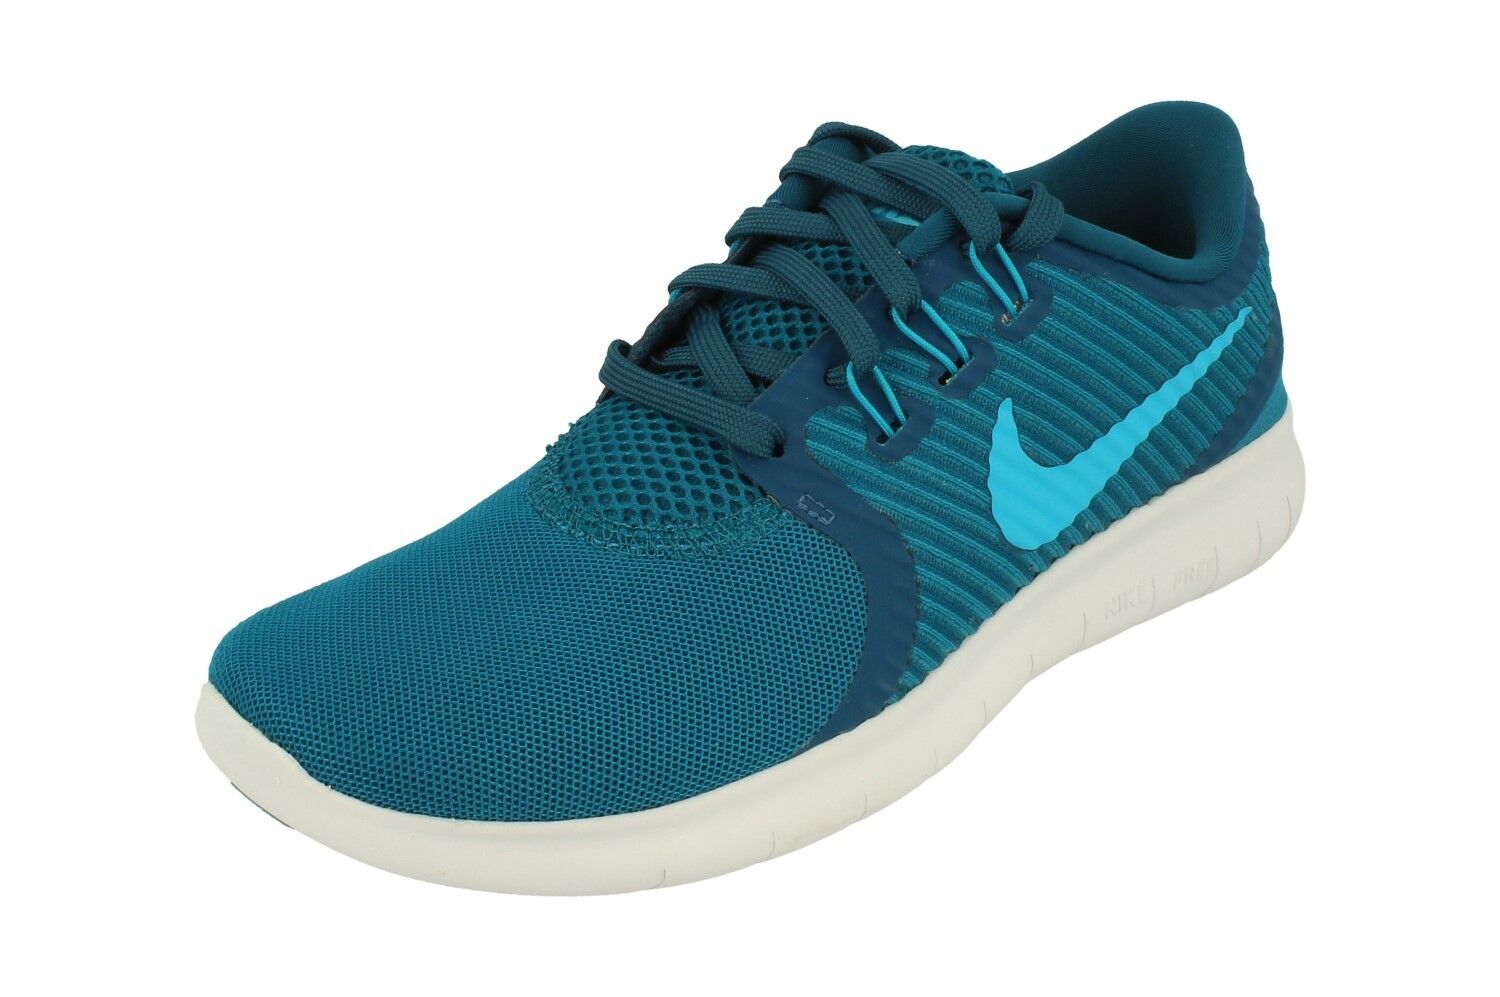 Nike Womens Free RN Cmtr Running Trainers 831511 Sneakers Shoes 301